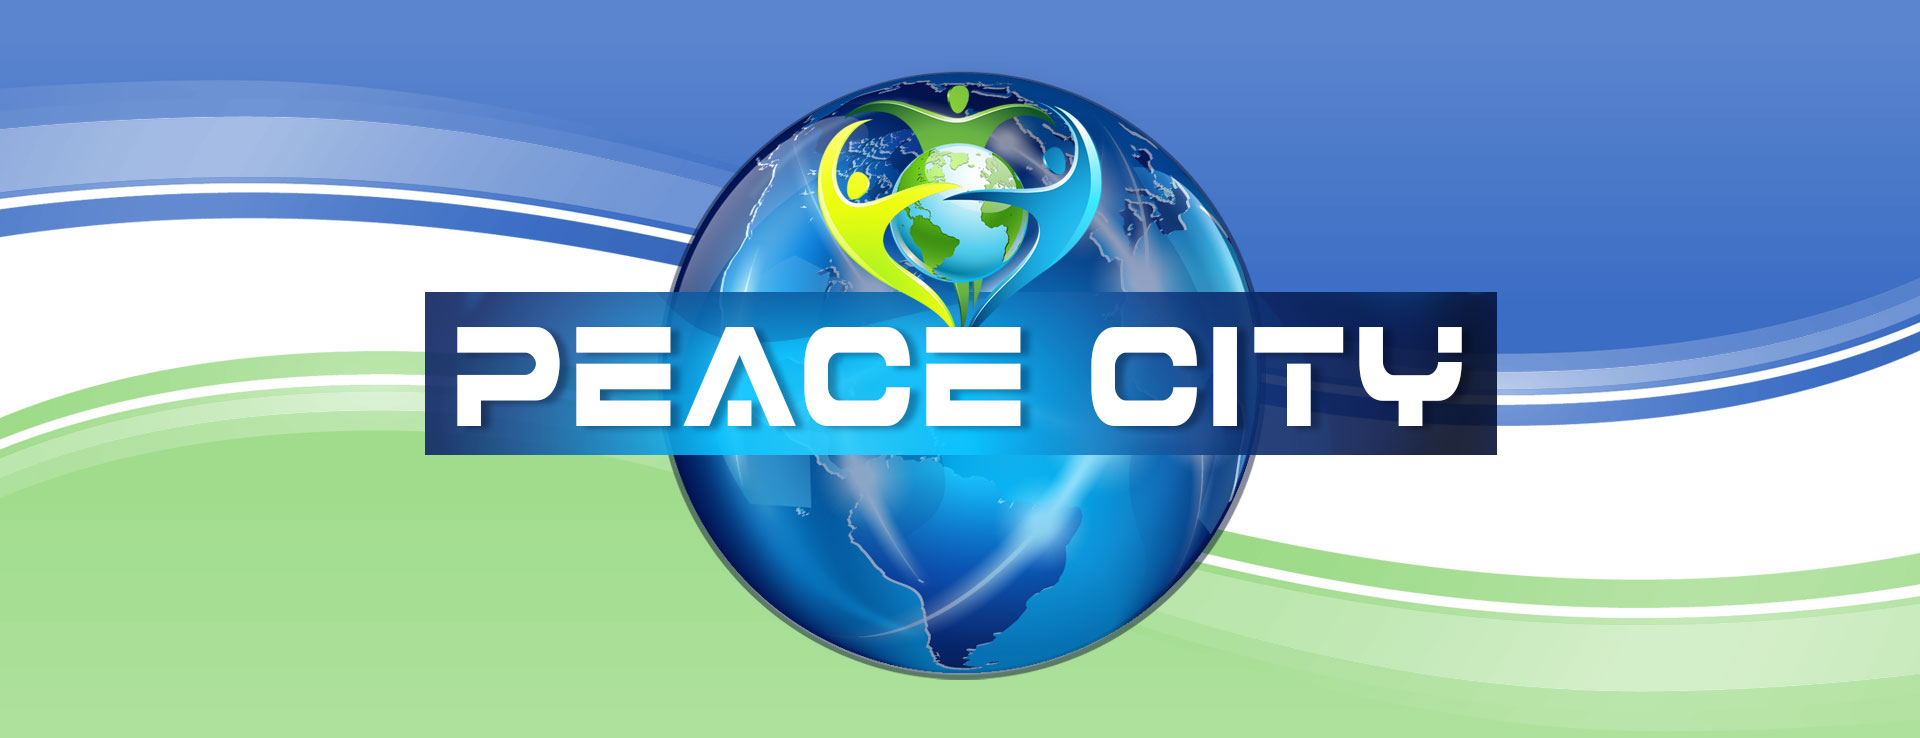 PEACE-CITY-LOGO-2017-2